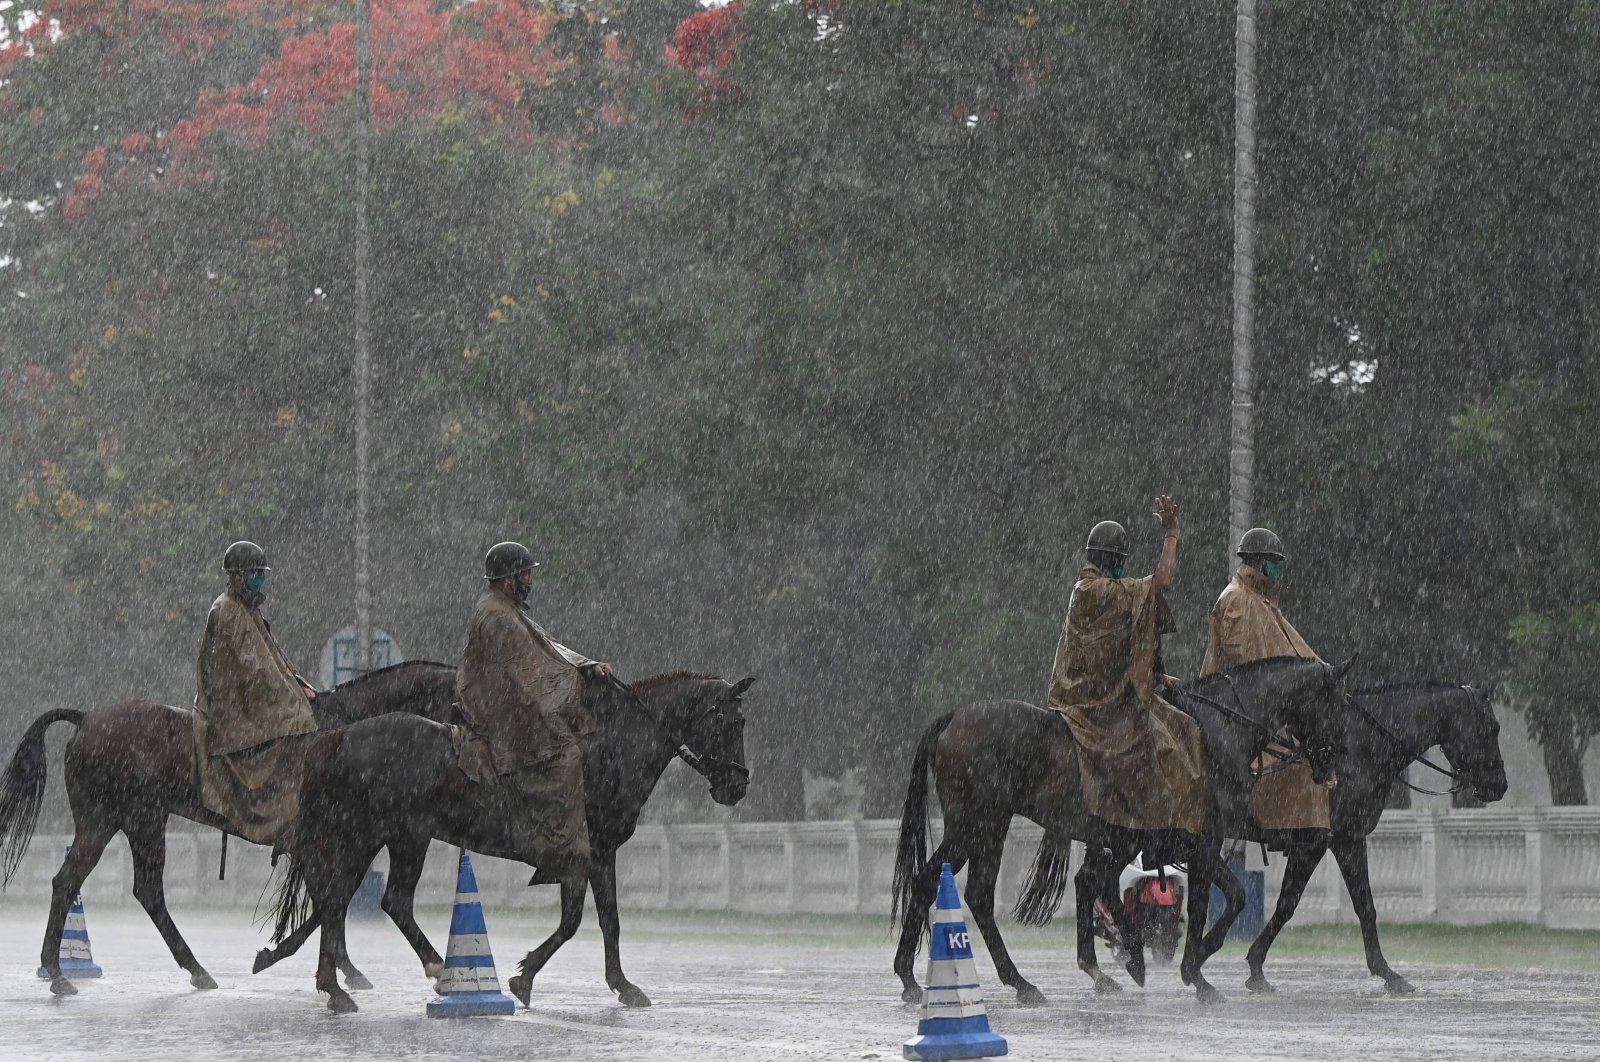 Mounted police ride on their horses along a road during rainfall in Kolkata, India, May 24, 2021. (AFP Photo)